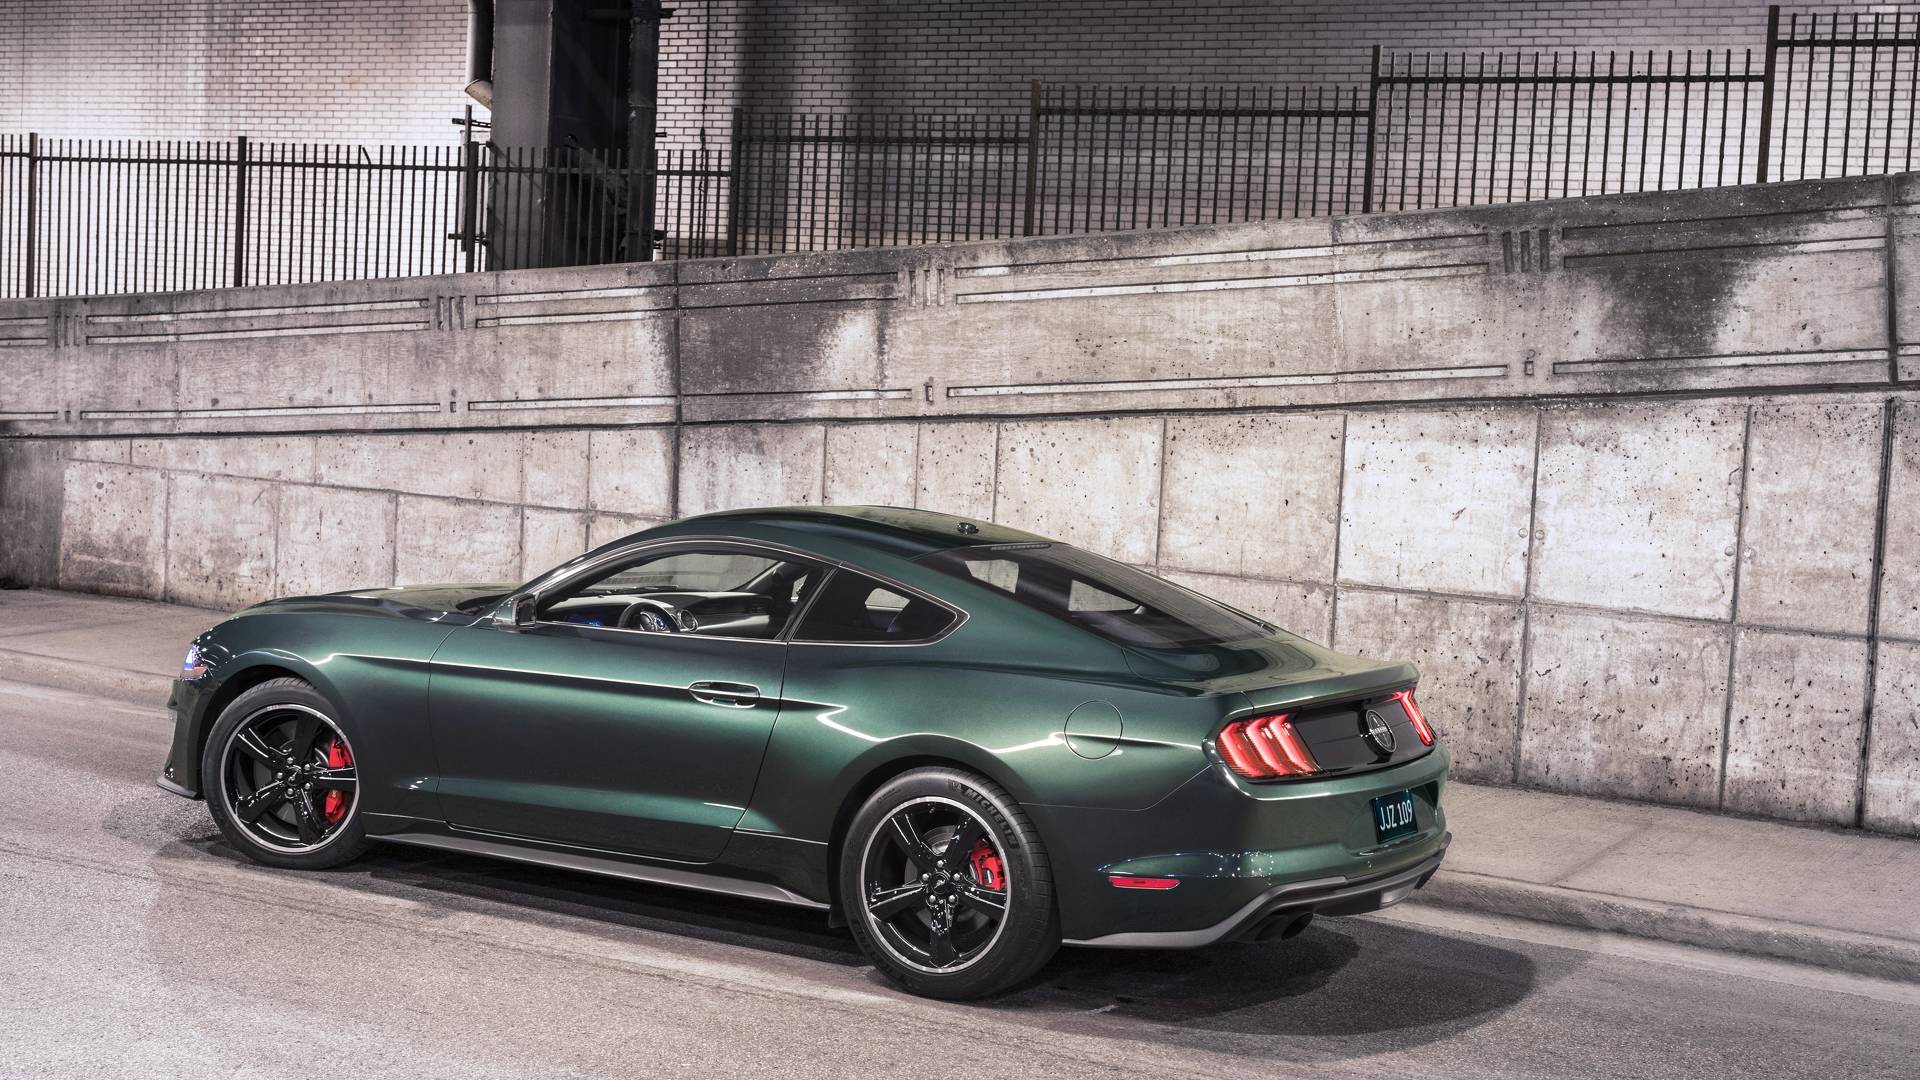 2019 Ford Mustang Getting More Expensive, 2019 Chevrolet ...